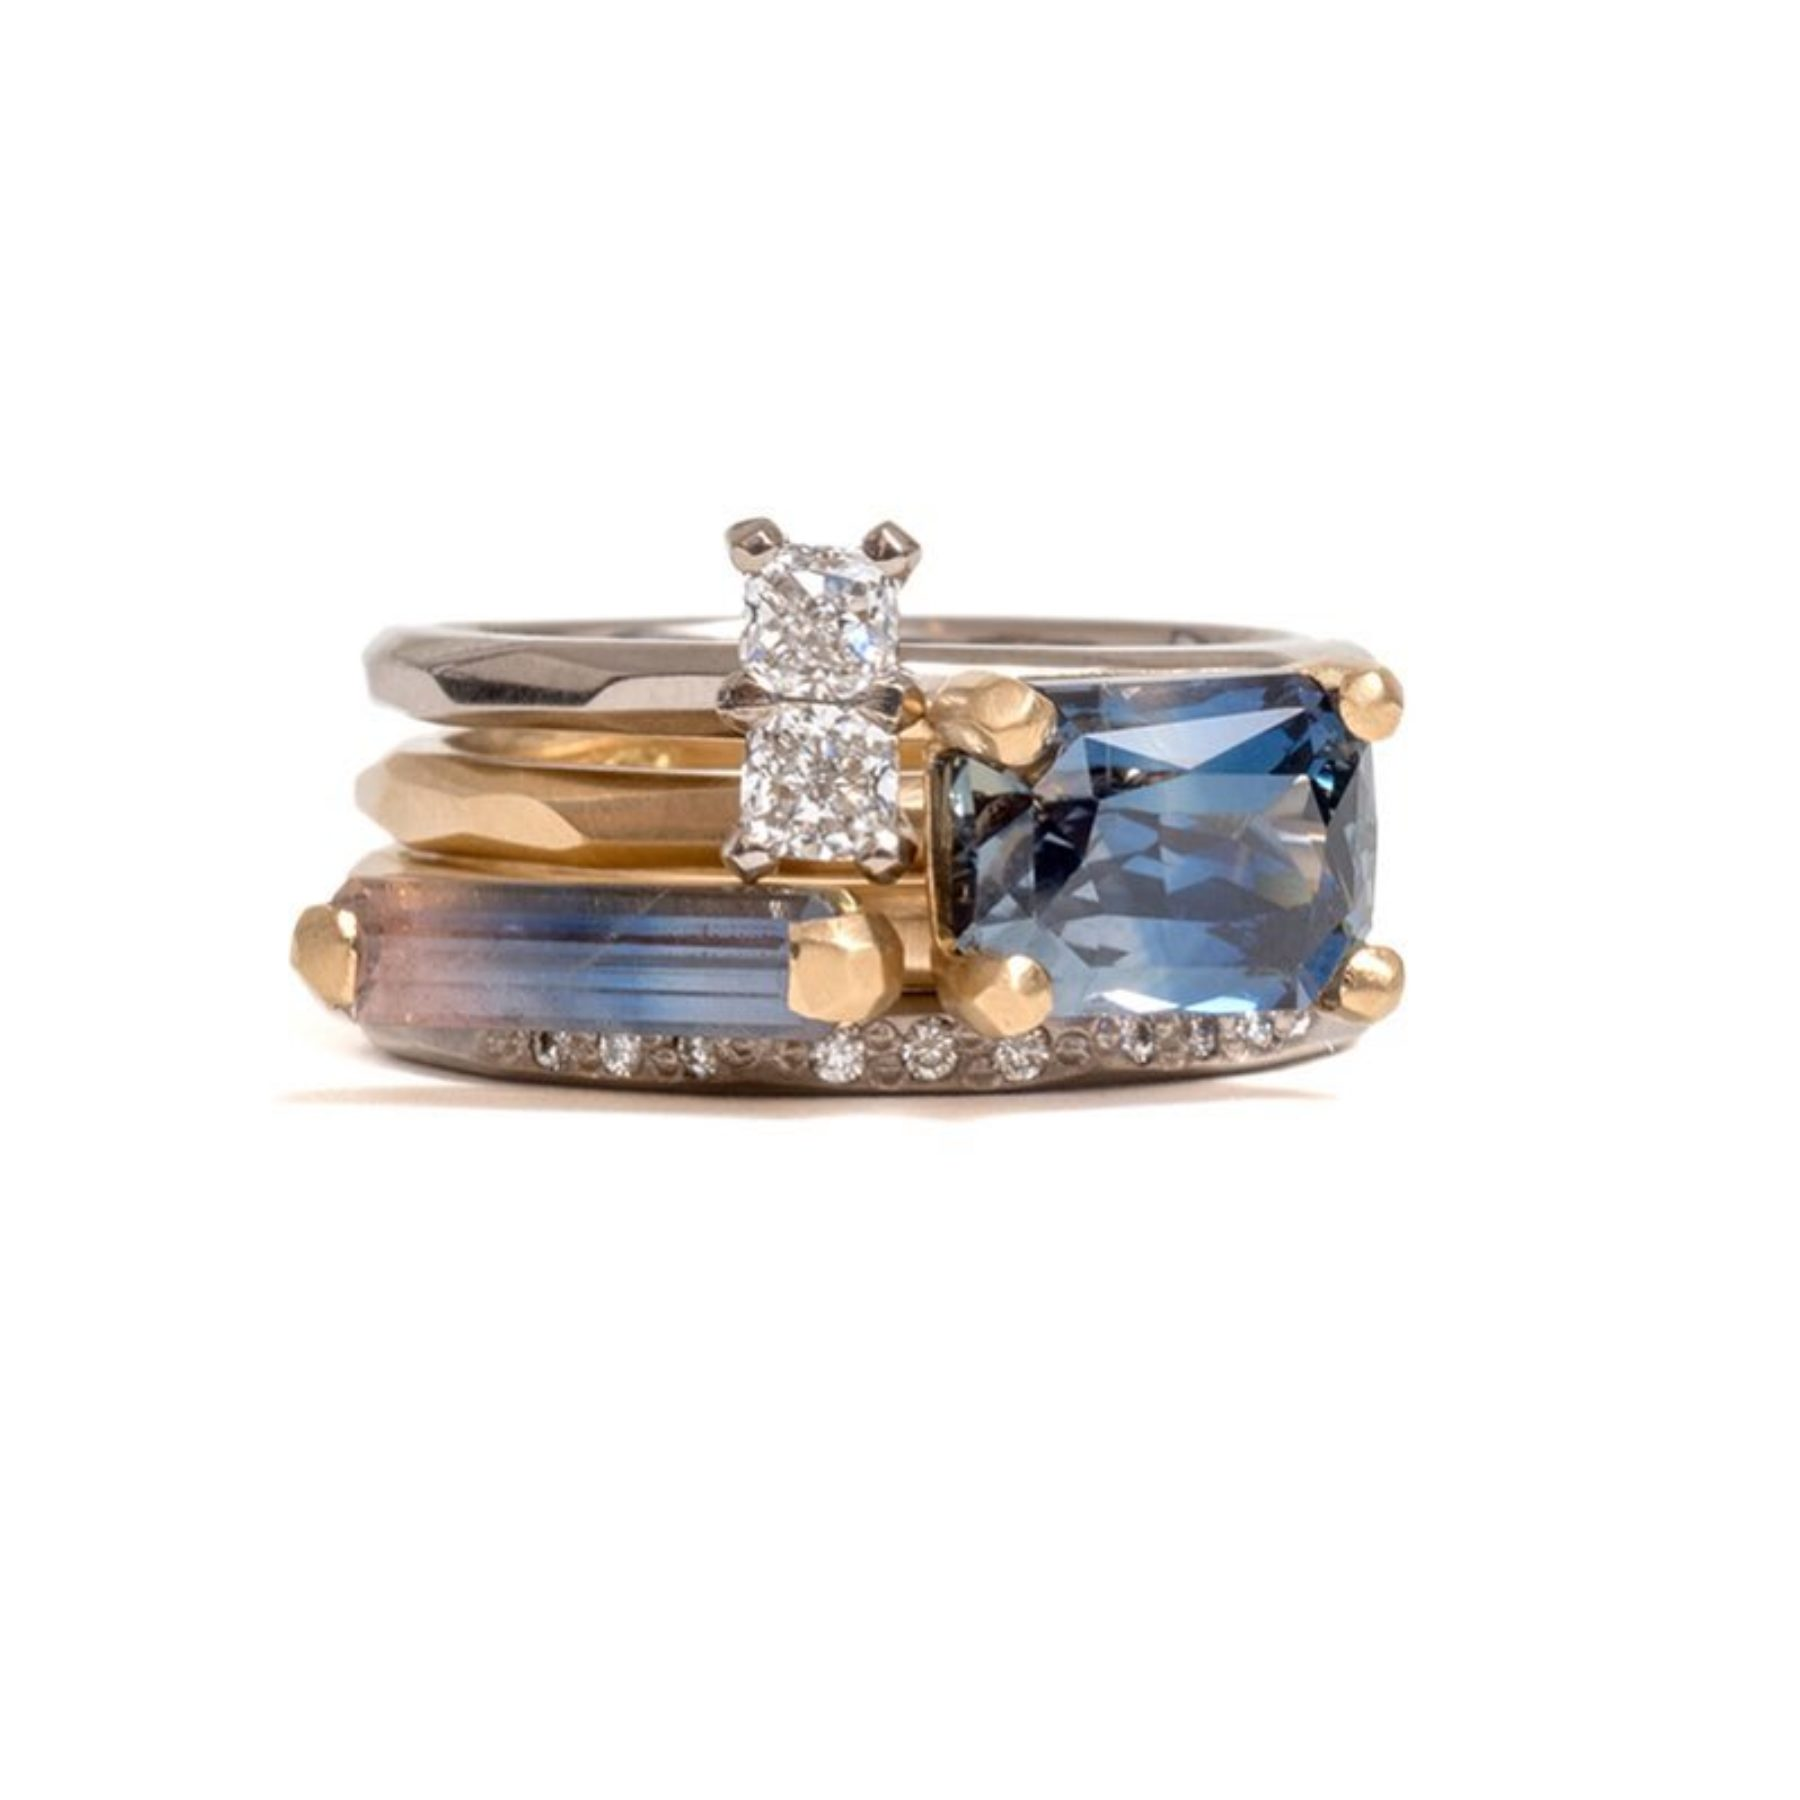 bc9bd0b53b216e 20 Non-traditional Engagement Rings We Love - nouba.com.au - 20 Non ...